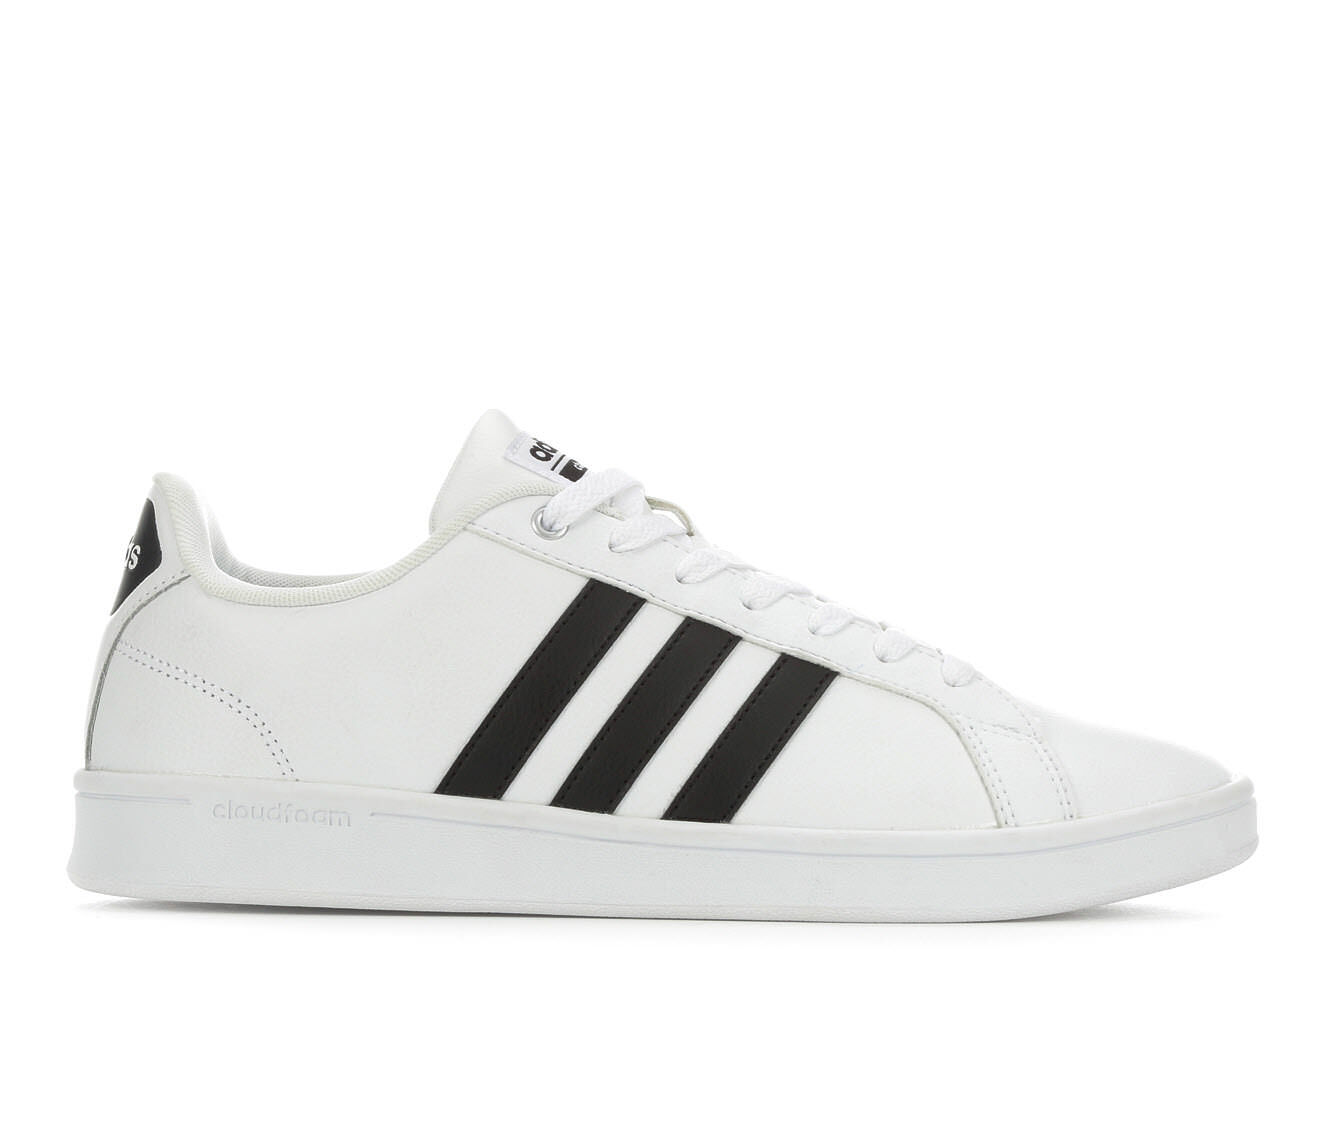 Men\u0026#39;s Adidas Cloudfoam Advantage Stripe Retro Sneakers